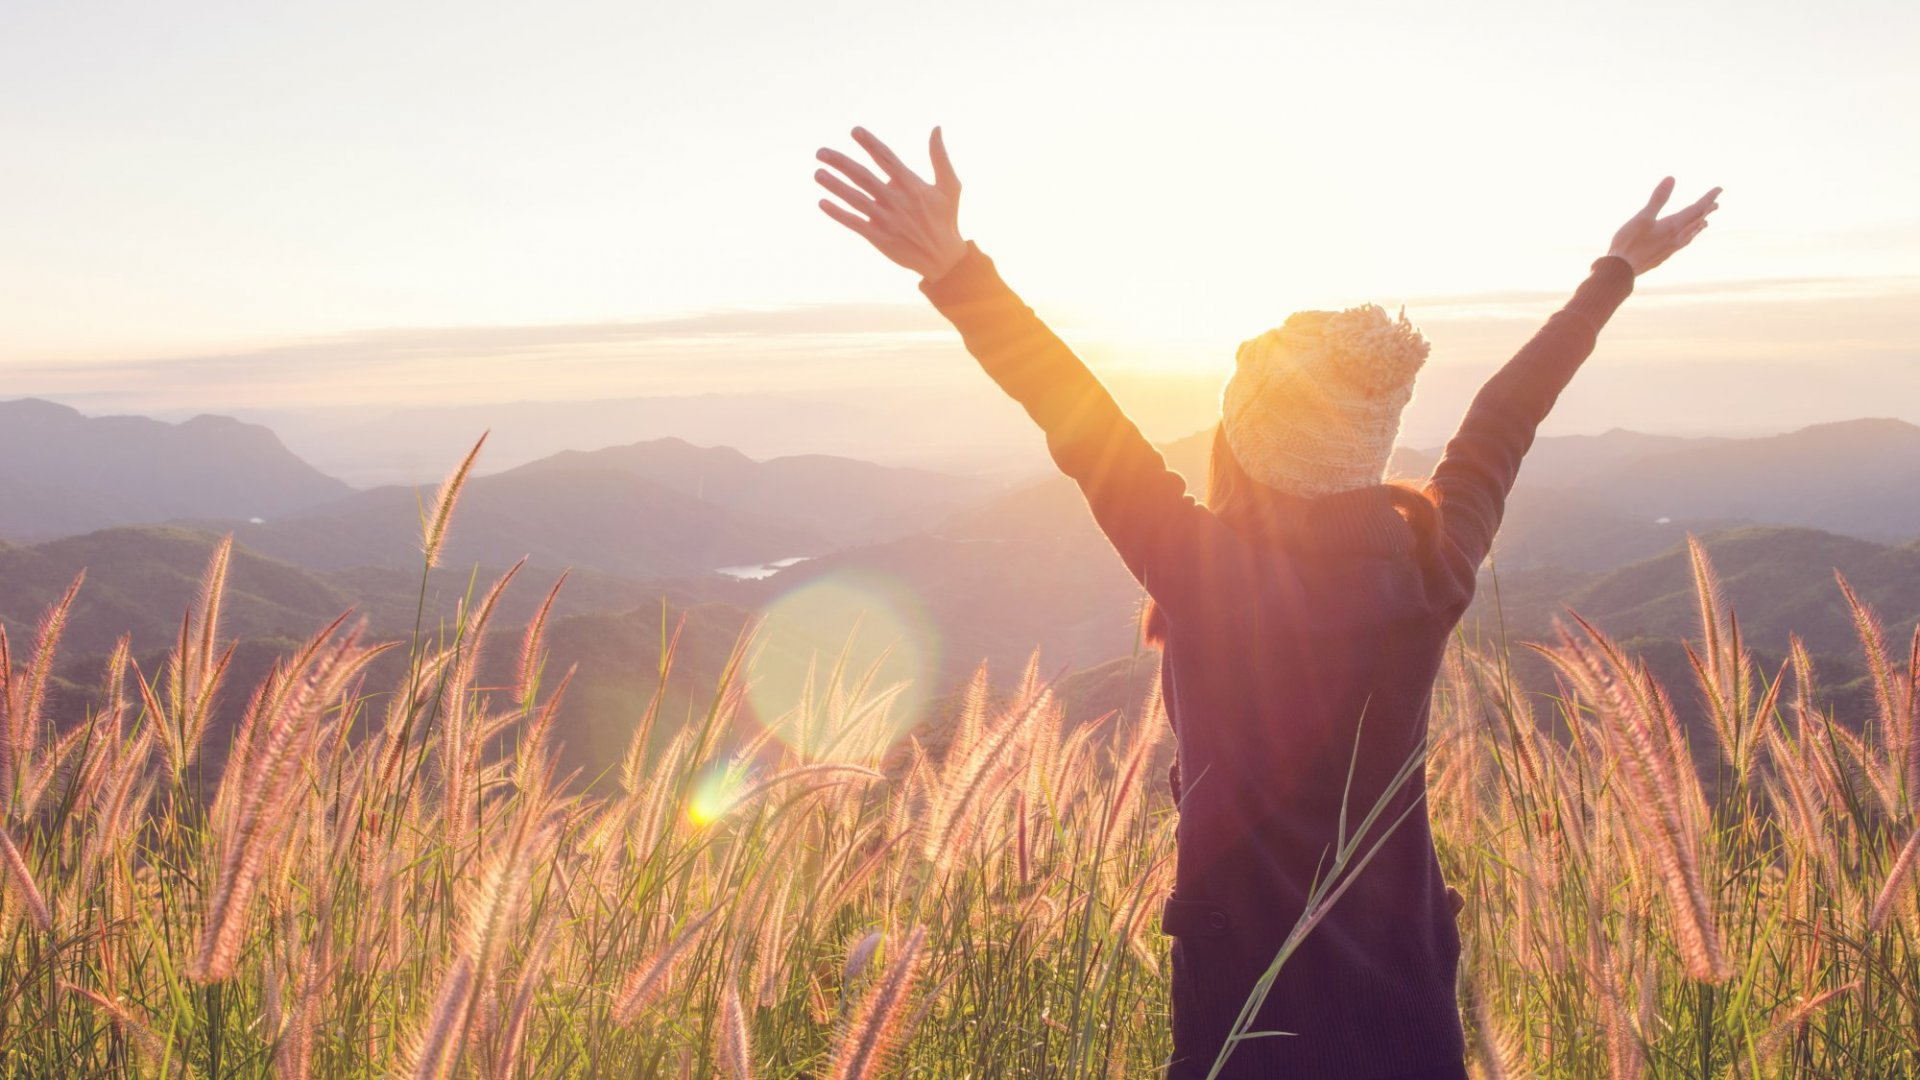 10 Ways to Overcome Your Fears So You Can Live Your Dreams